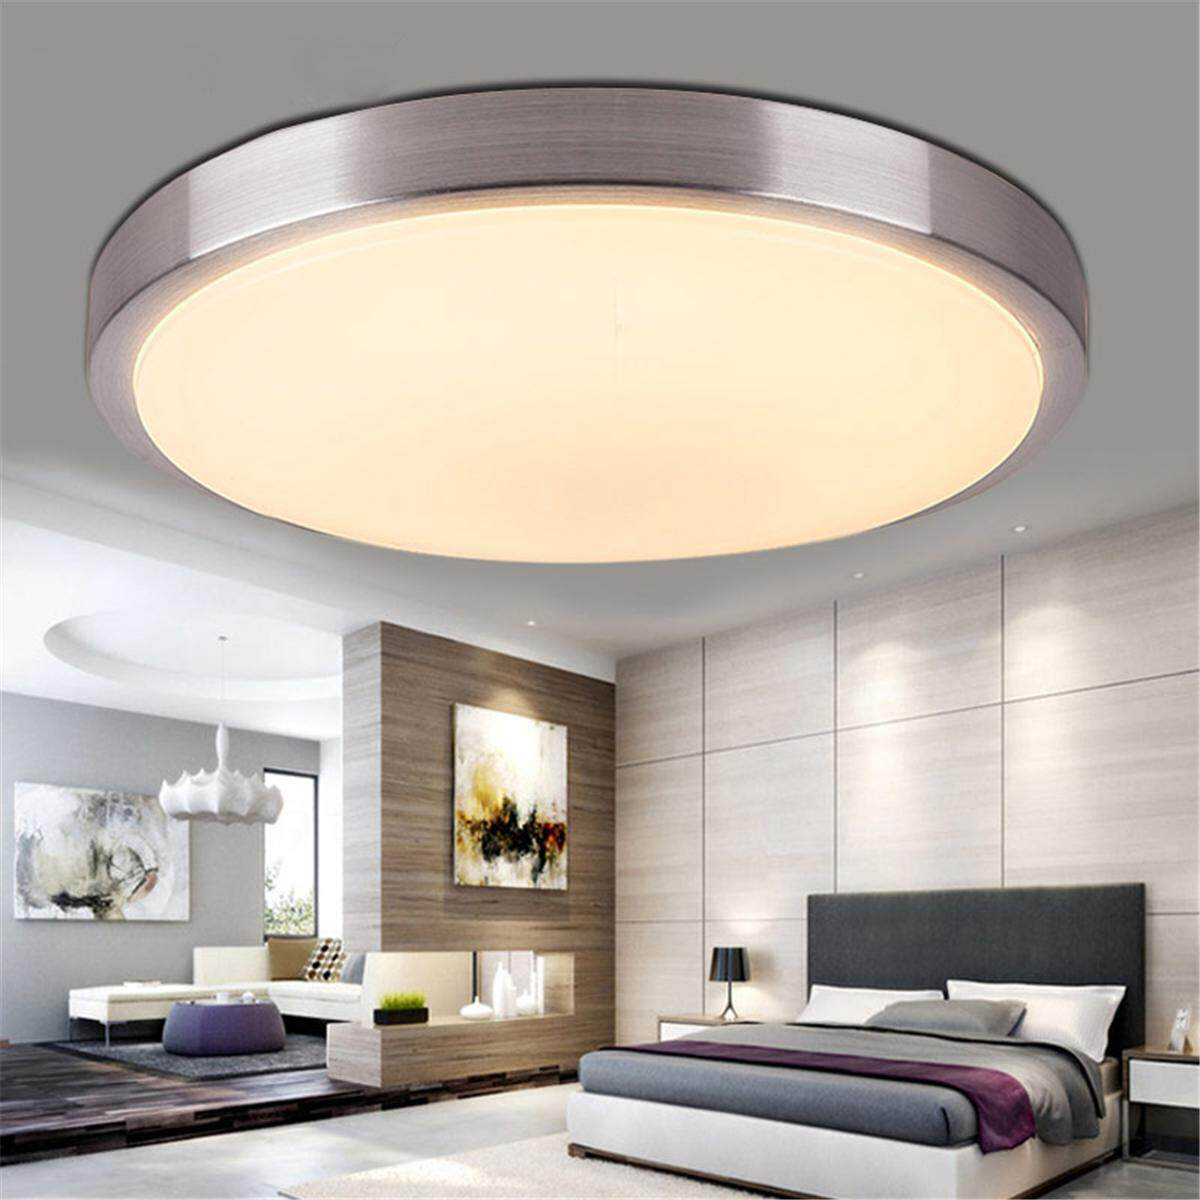 Buy Home Ceiling Lights | Home Decor | Lazada.sg Room Ceiling Lighting Ideas Html on living room lighting ideas, great room lighting ideas, room ceiling design, family room lighting ideas, room led lighting ideas, room wall ideas, room floor lighting ideas, track lighting ideas, great room decorating ideas, room kitchen ideas, room ceiling lights, room christmas decor ideas, rope lighting ideas,